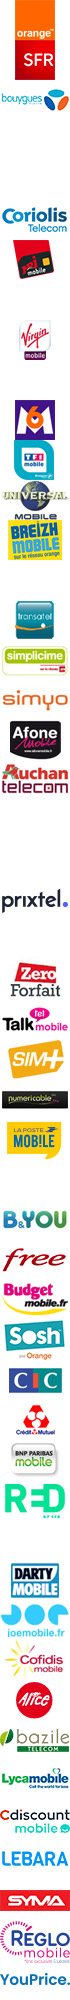 Forfait B-And-You 24/24 illimité 20Go sans mobile sans engagement